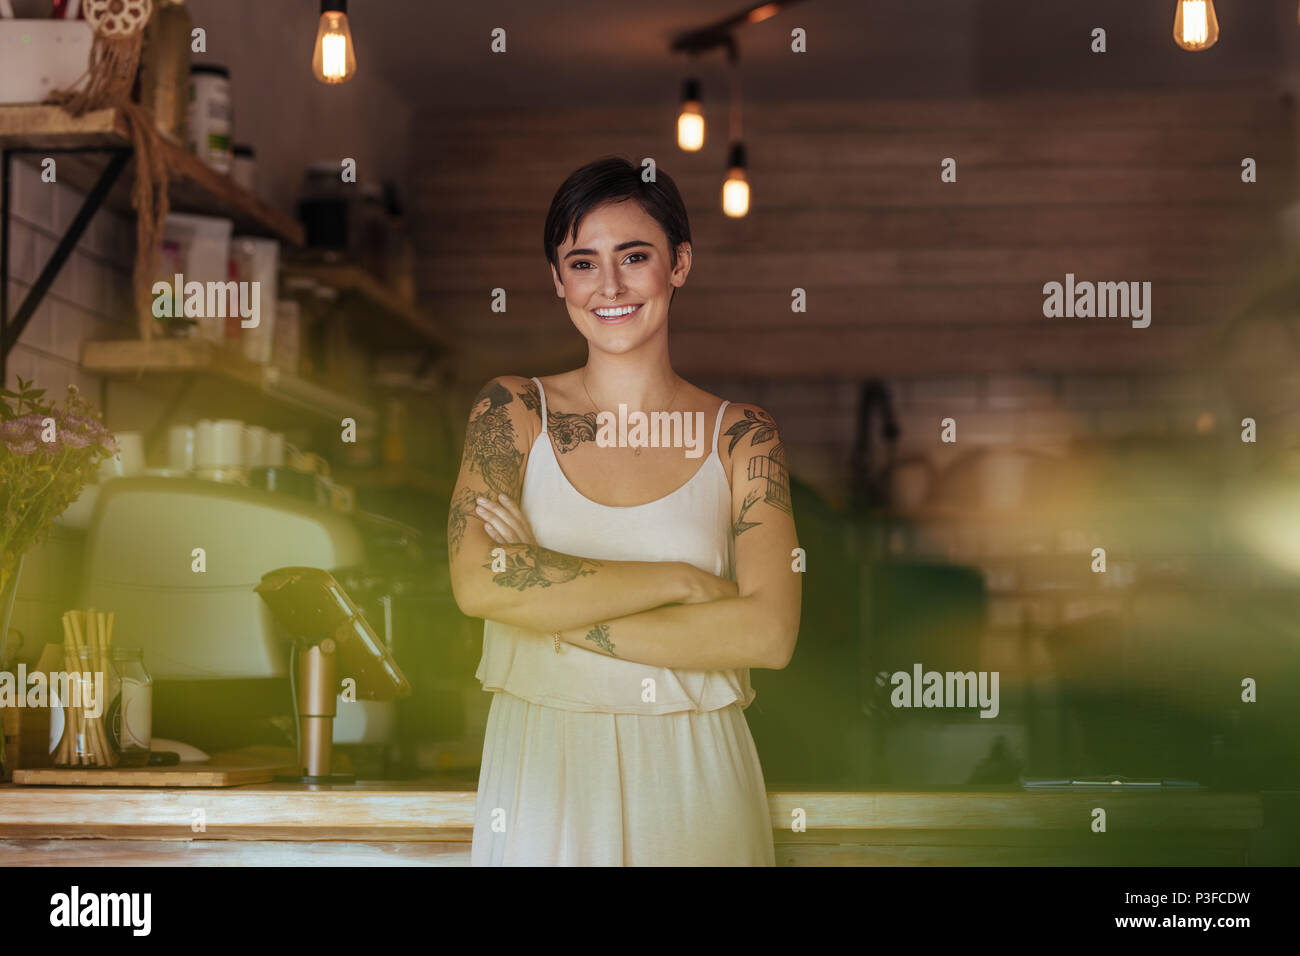 Woman standing in front of the counter of her cafe with folded arms. Smiling restaurant owner posing for a photograph at the billing counter. - Stock Image